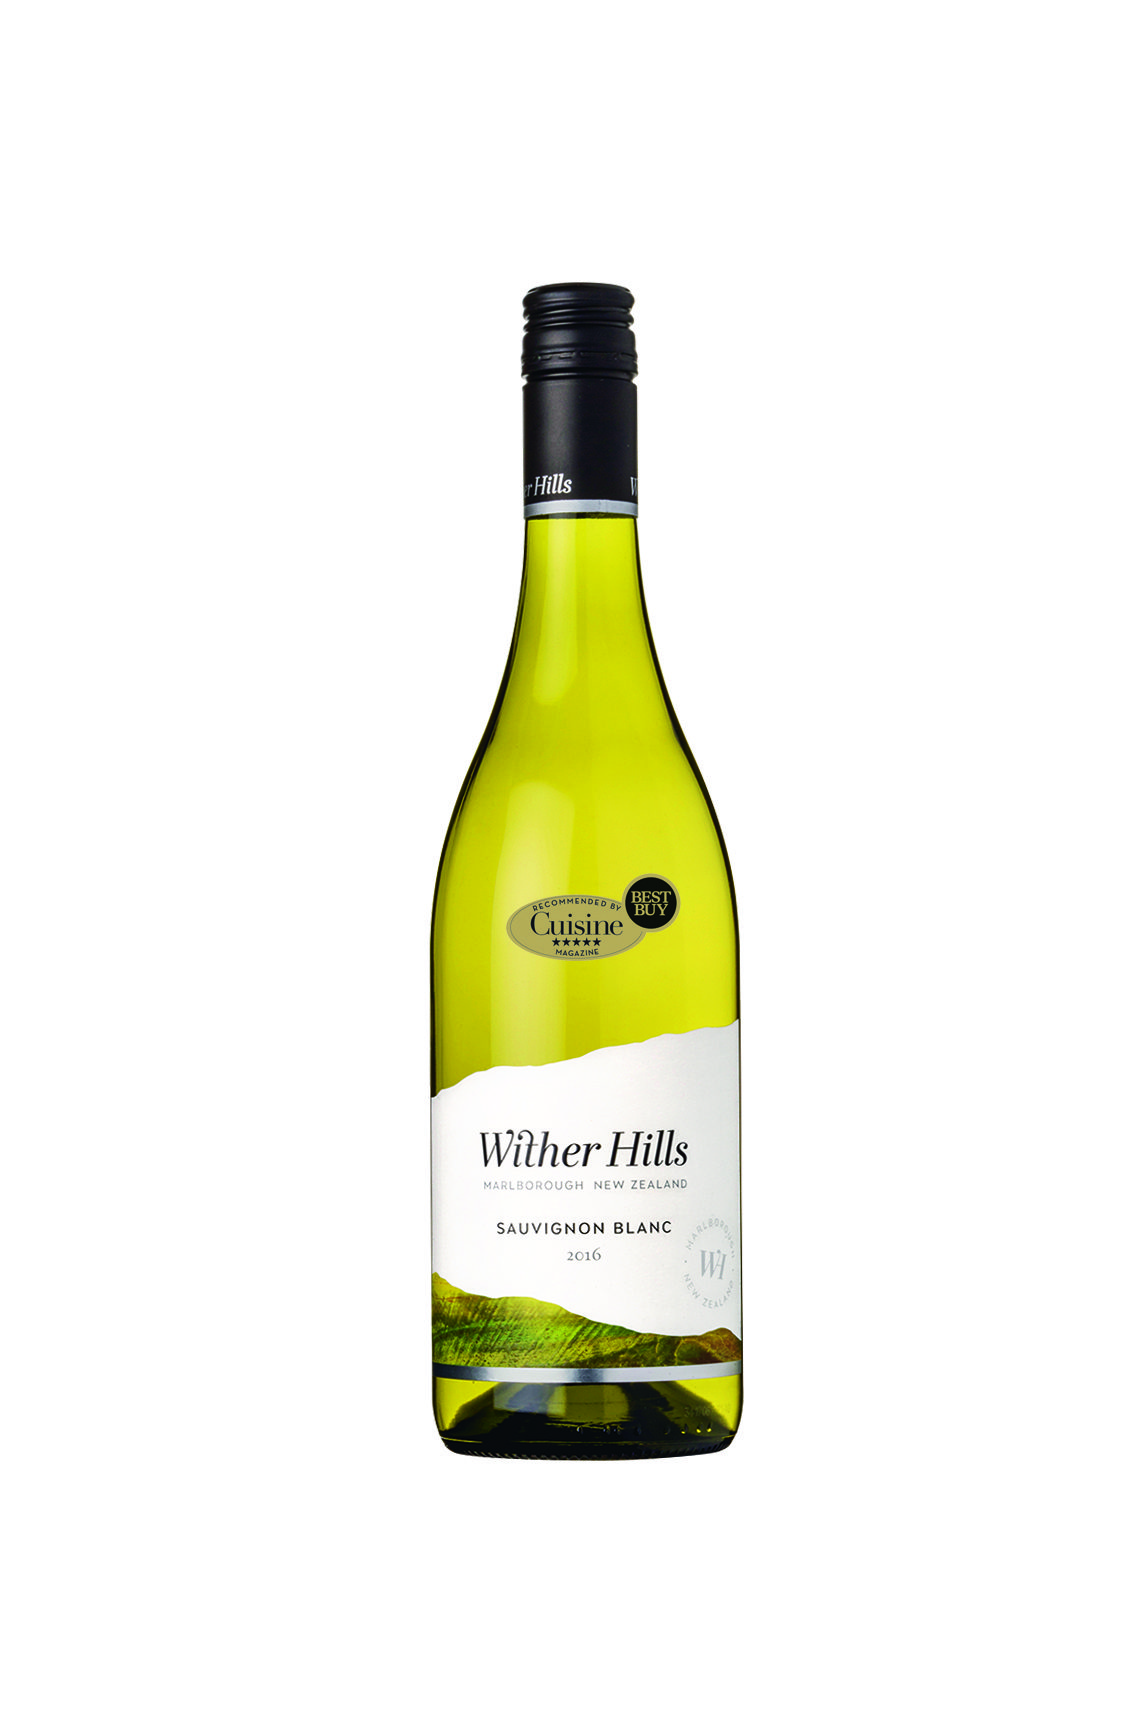 Wither Hills Marlborough Sauvignon Blanc 2016